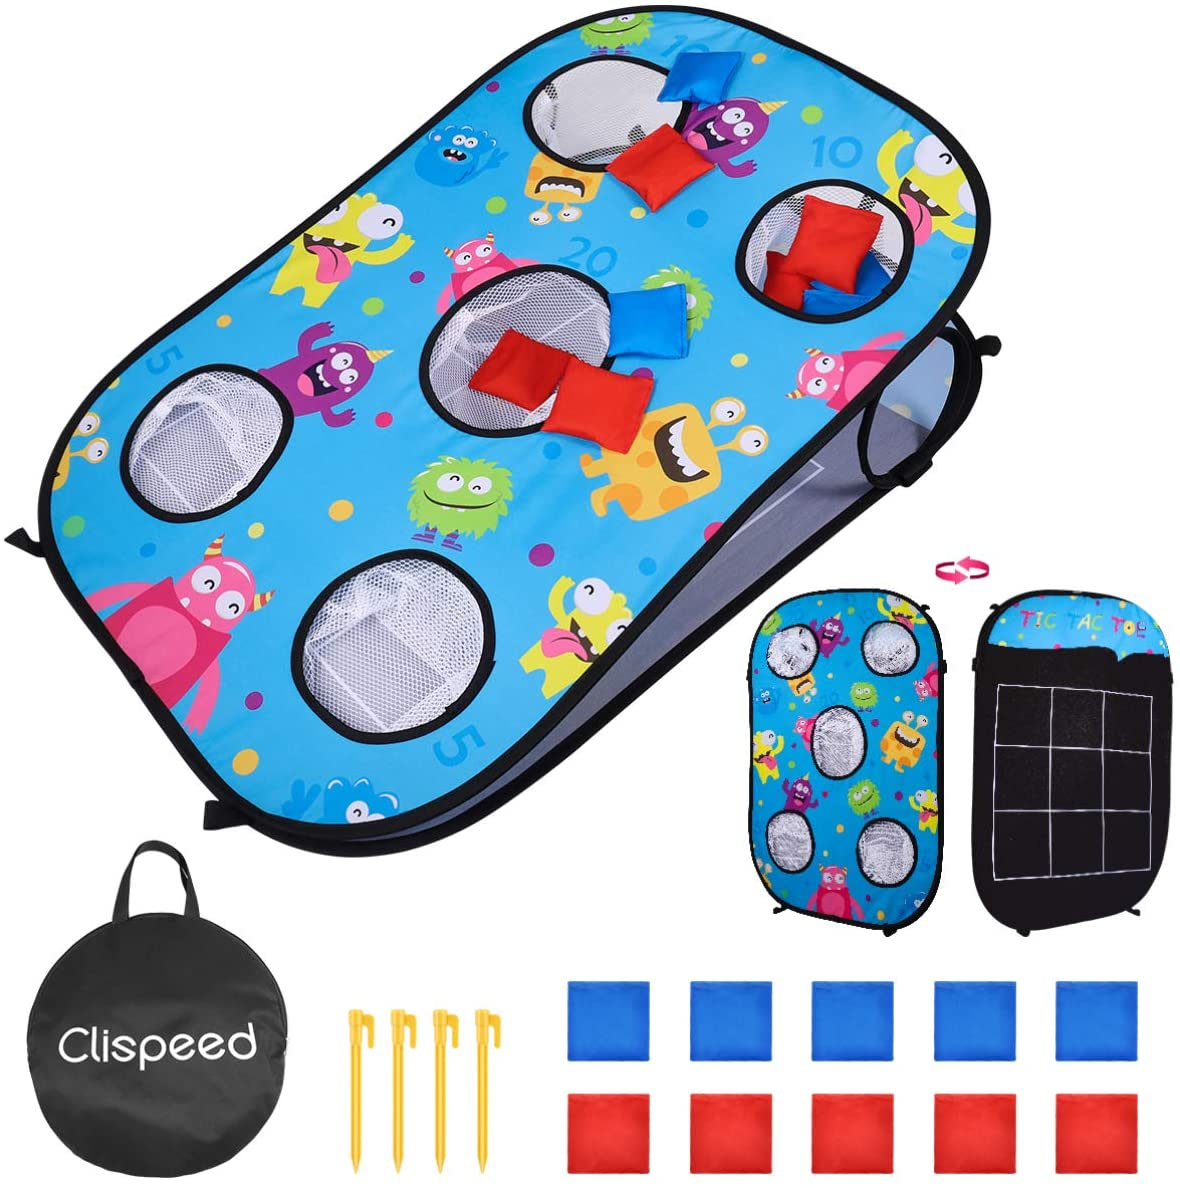 CLISPEED 5 Holes Cornhole Game Set Play Bean Bags Toy Throwing Bags Tossing Game with 10 Bean Bags,Tic Tac Toe Game Double Games for Kids Children 90 x 60 x 20 cm